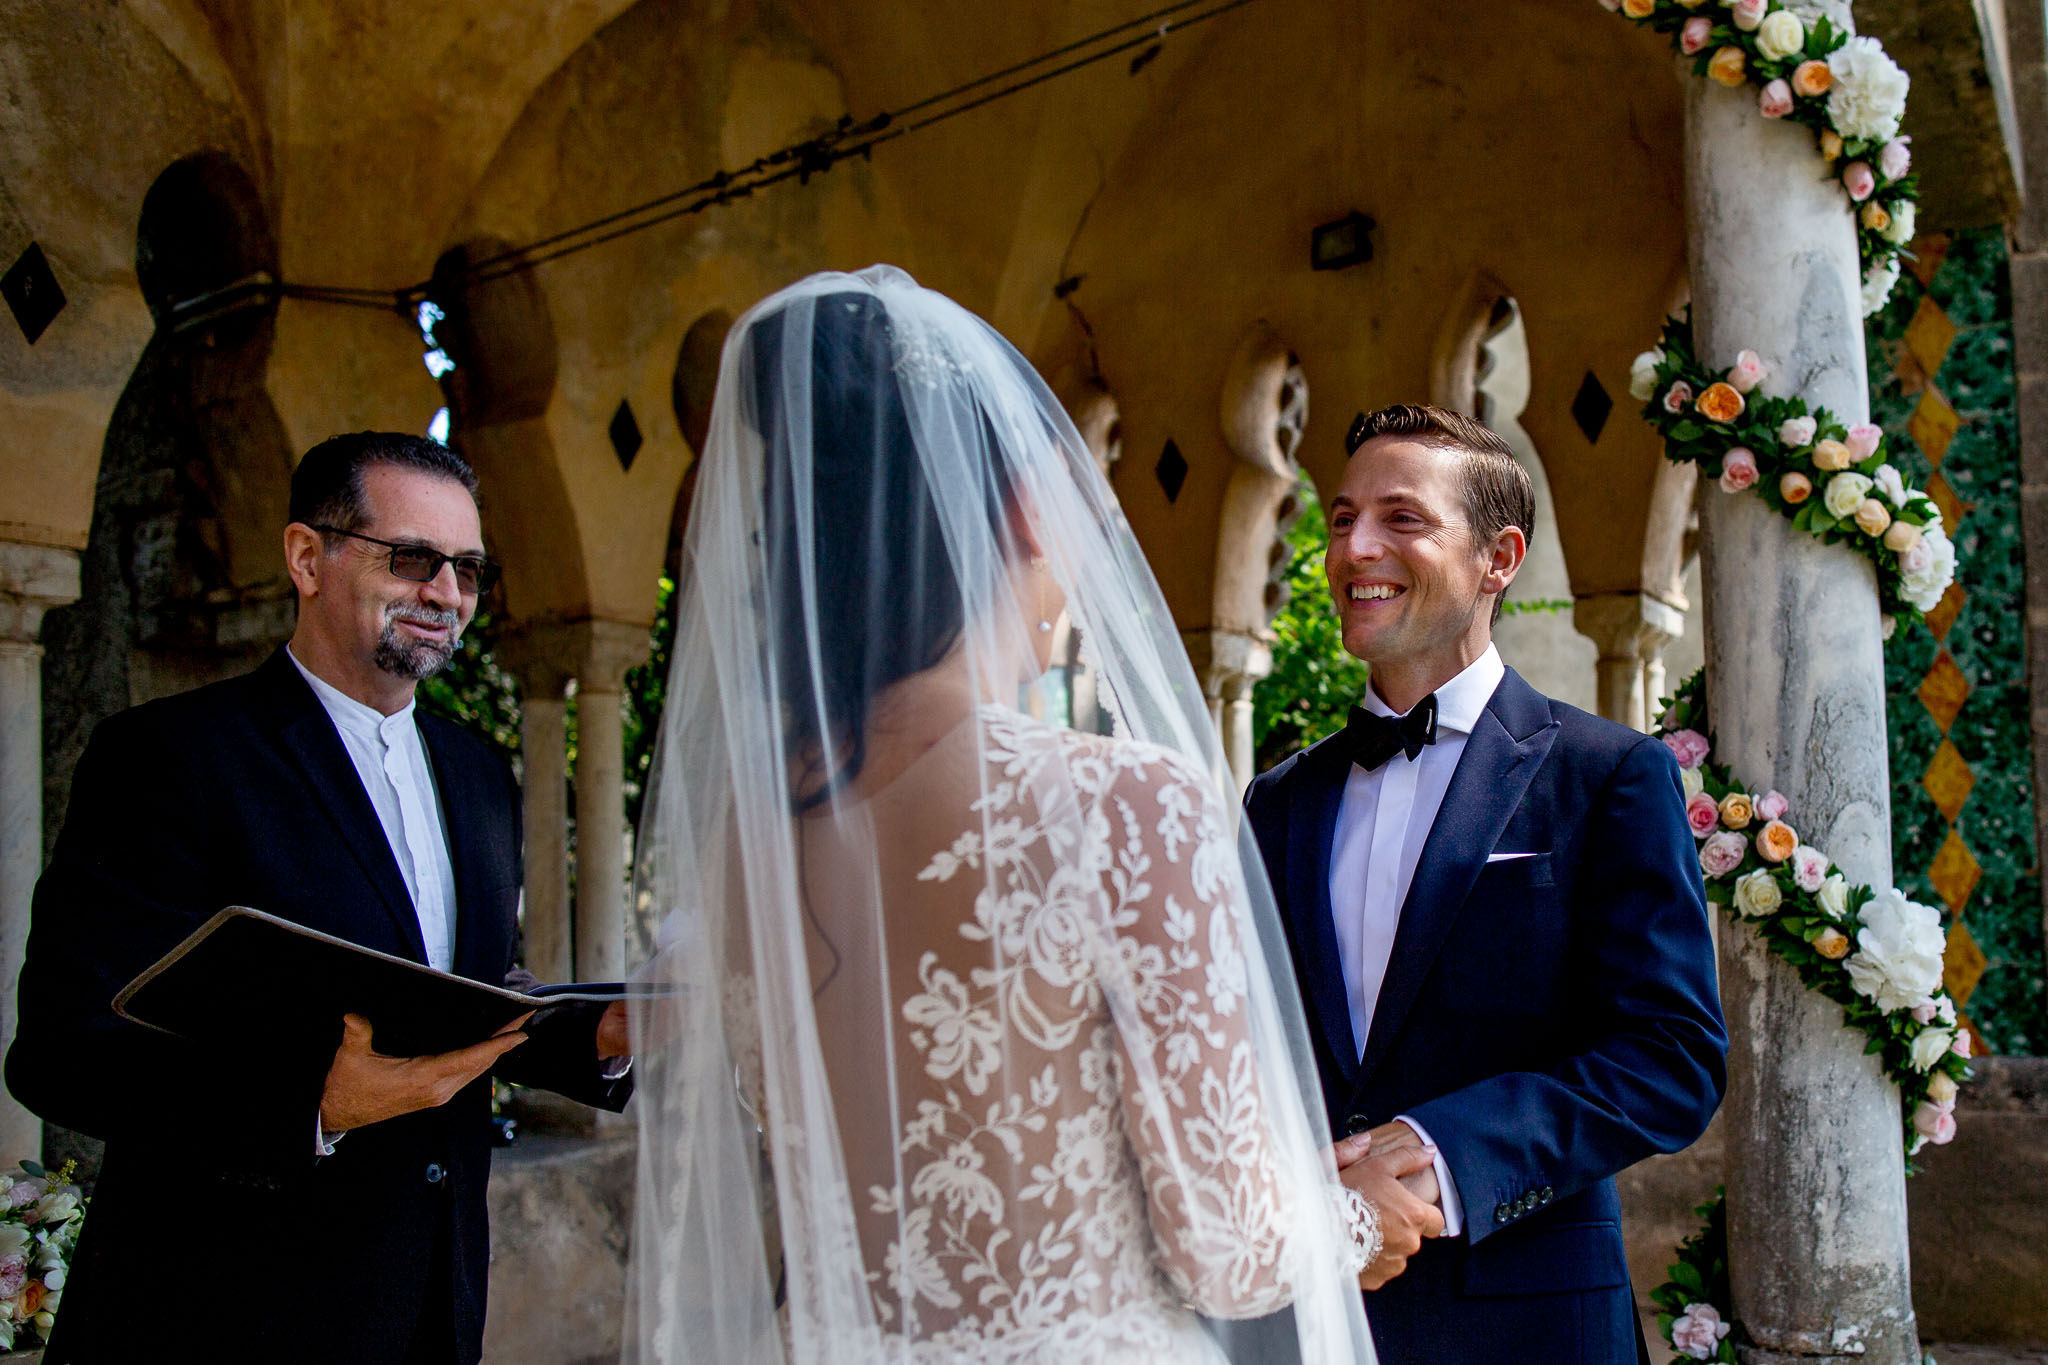 Happy groom receiving vows during wedding ceremony at Villa Cimbrone in Garden along Amalfi Coast in Italy